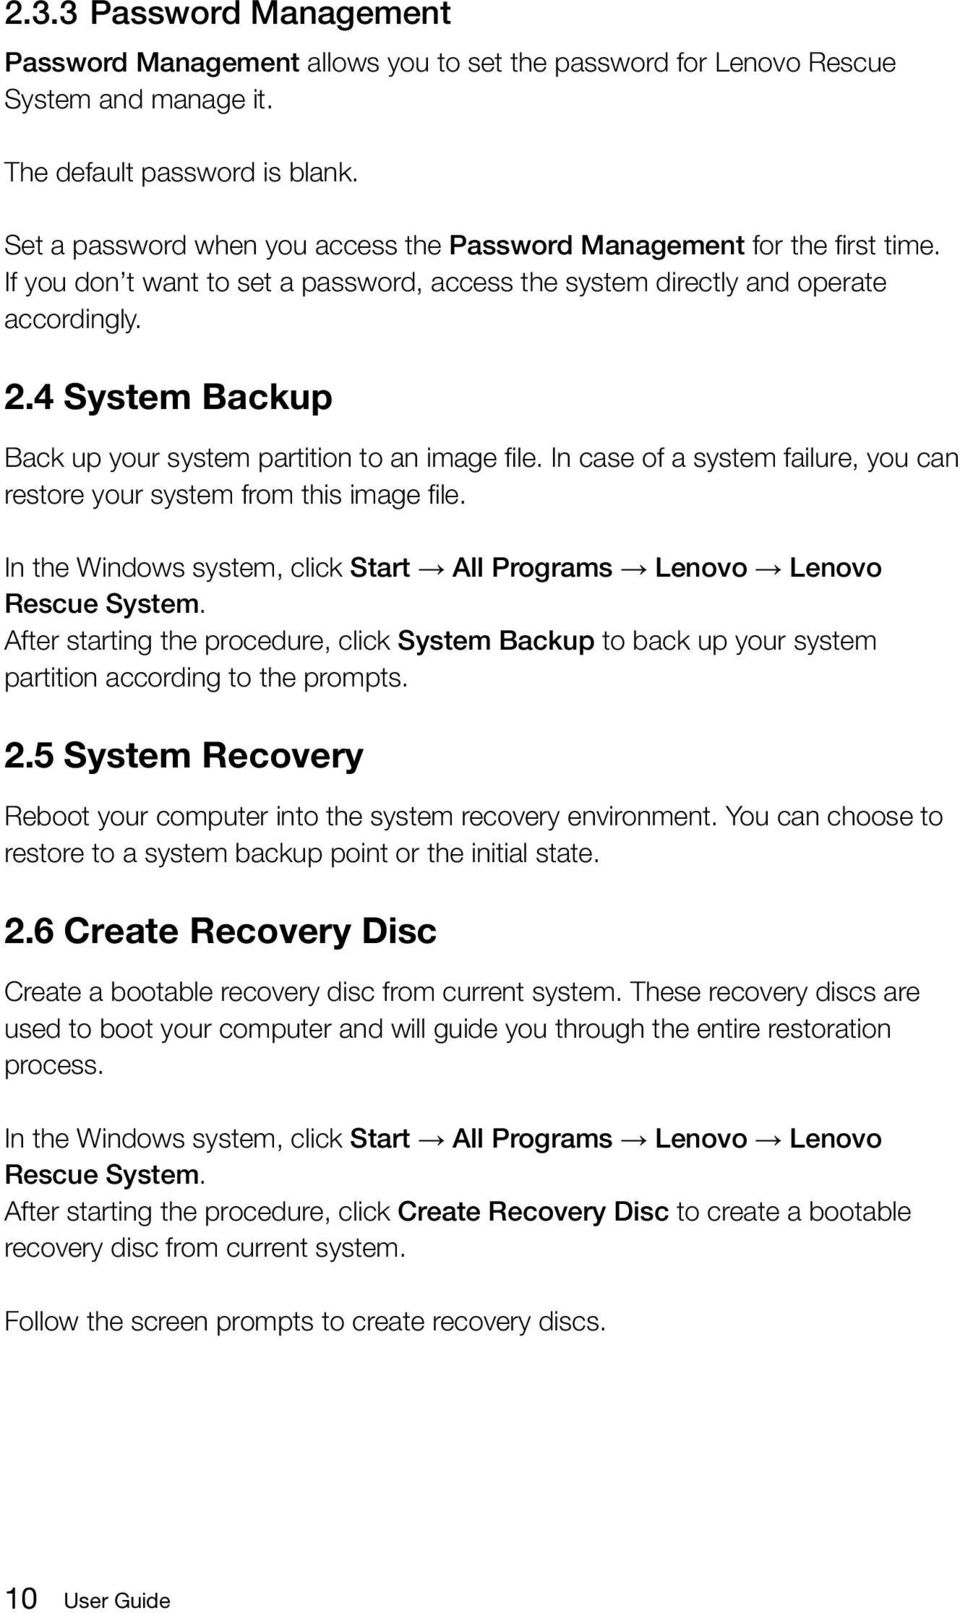 4 System Backup Back up your system partition to an image file. In case of a system failure, you can restore your system from this image file.